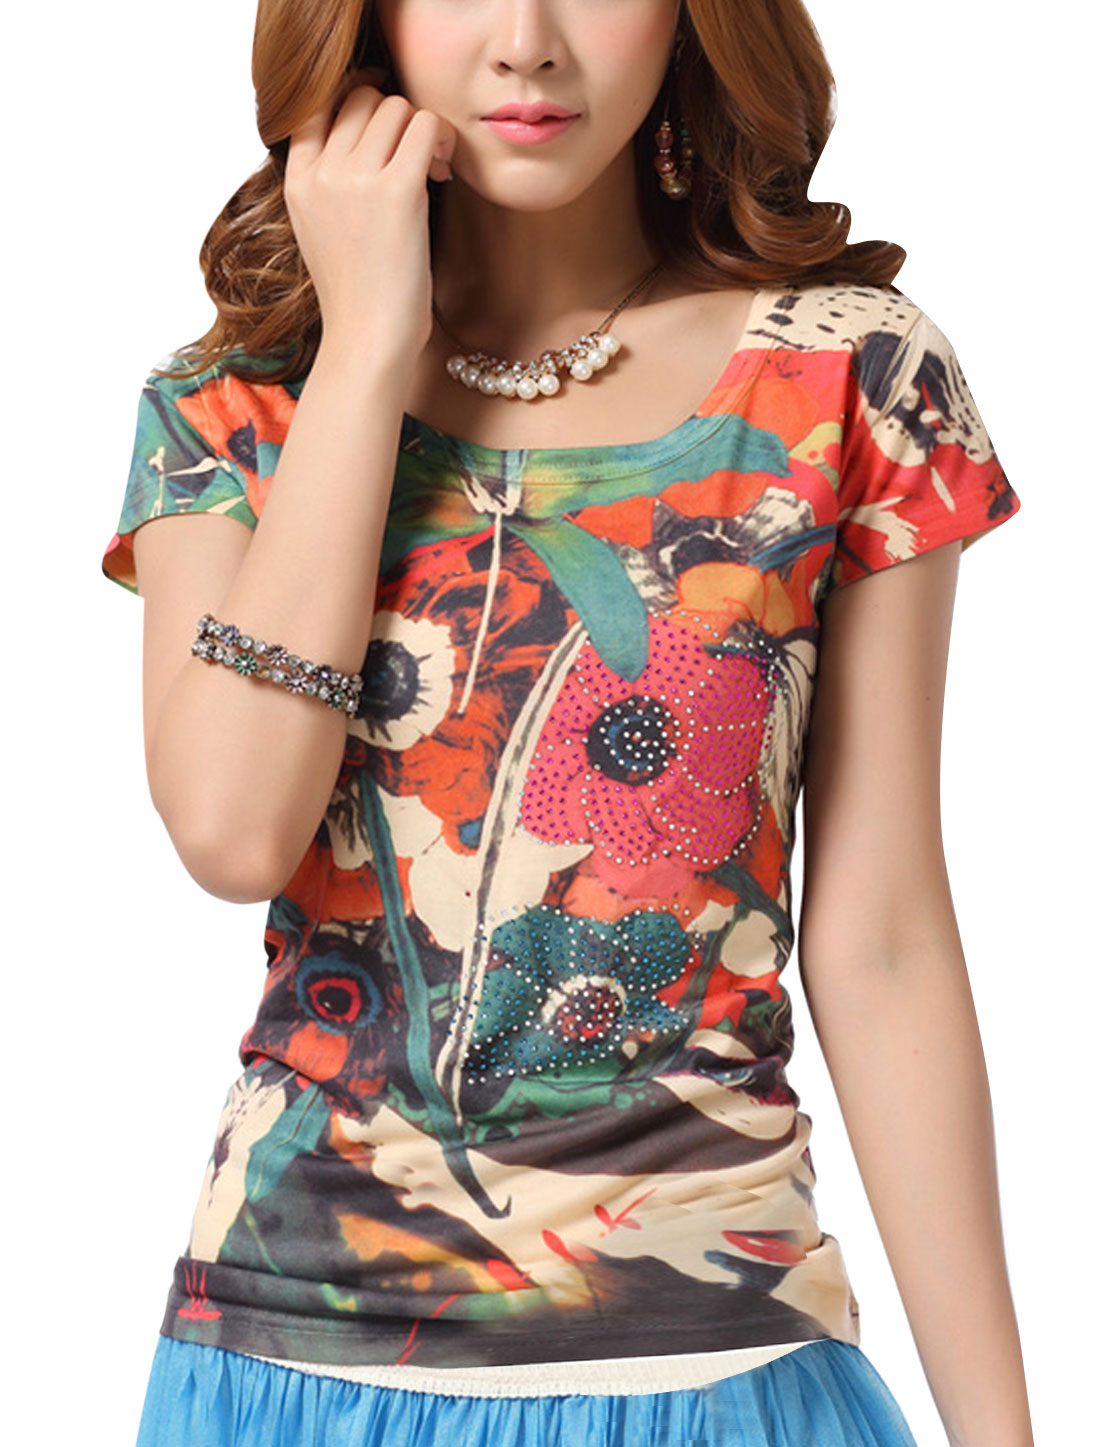 Lady Short Sleeve Floral Prints Rhinestone Decor T-Shirt Multicolor S